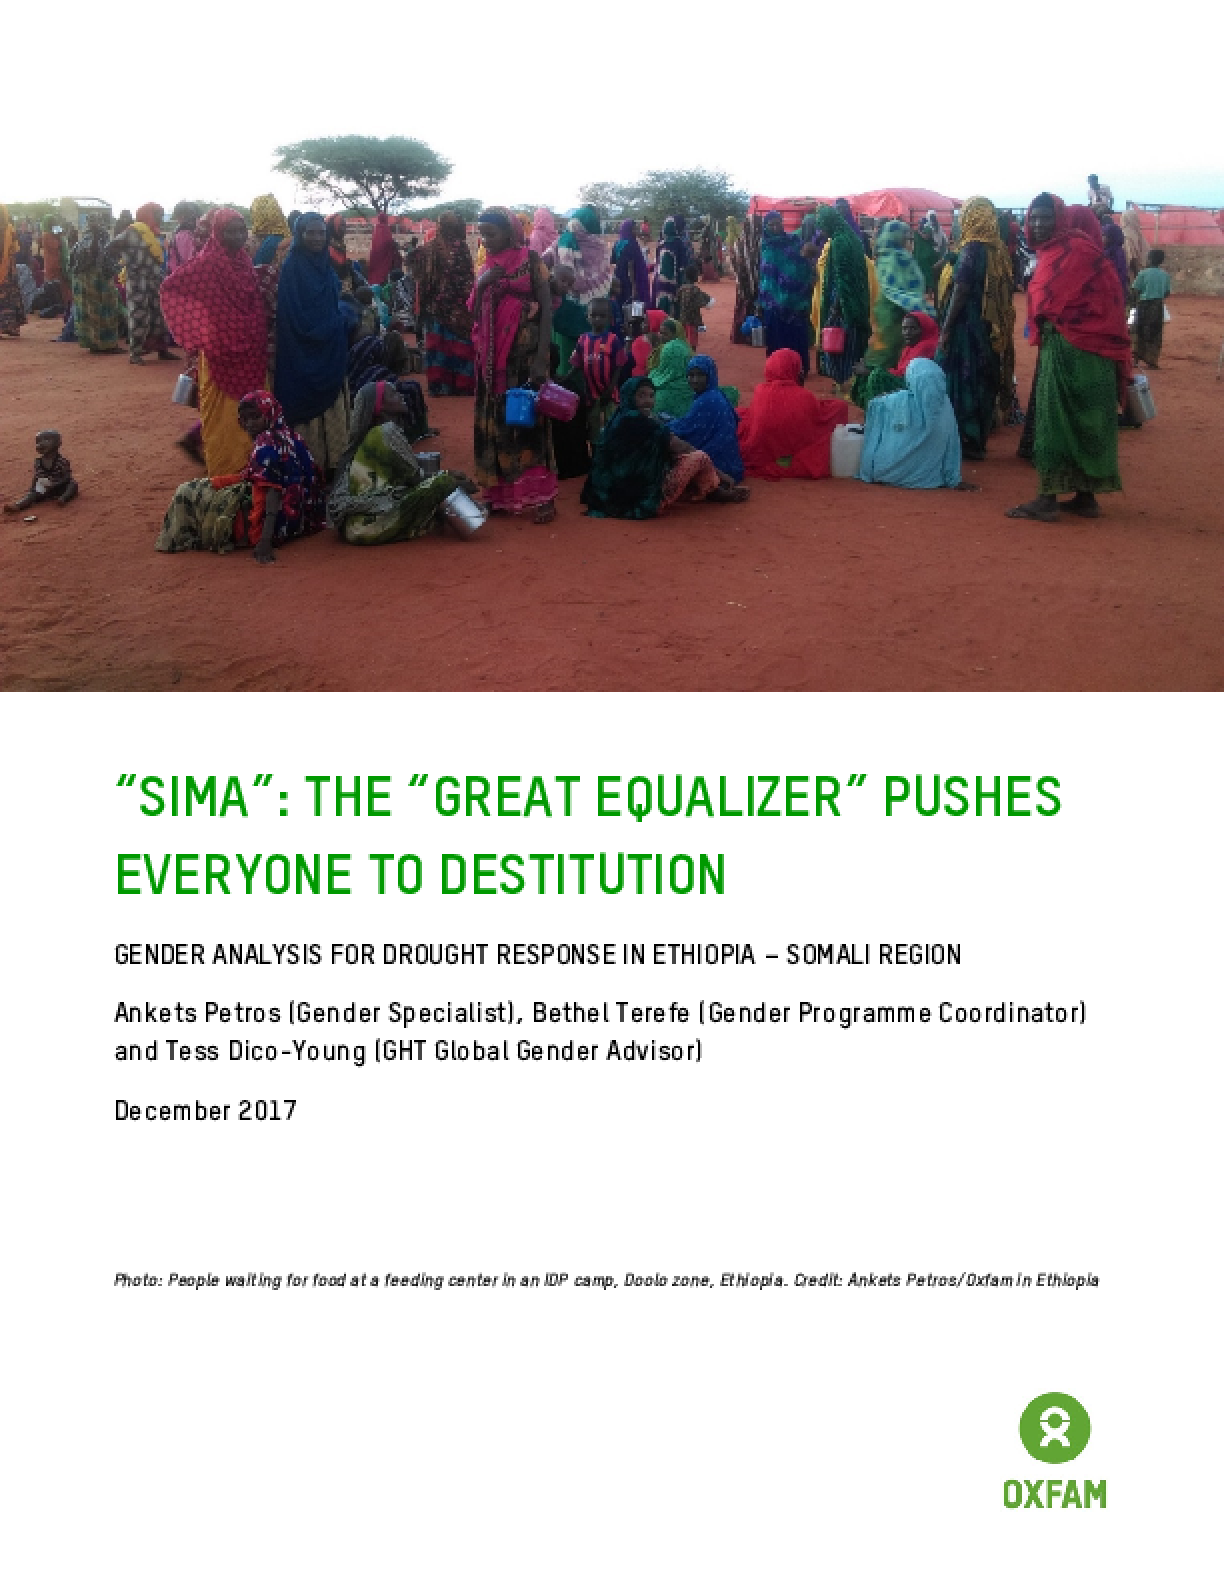 """""""Sima"""": The """"Great Equalizer"""" Pushes Everyone to Destitution: Gender analysis for drought response in Ethiopia - Somali Region"""